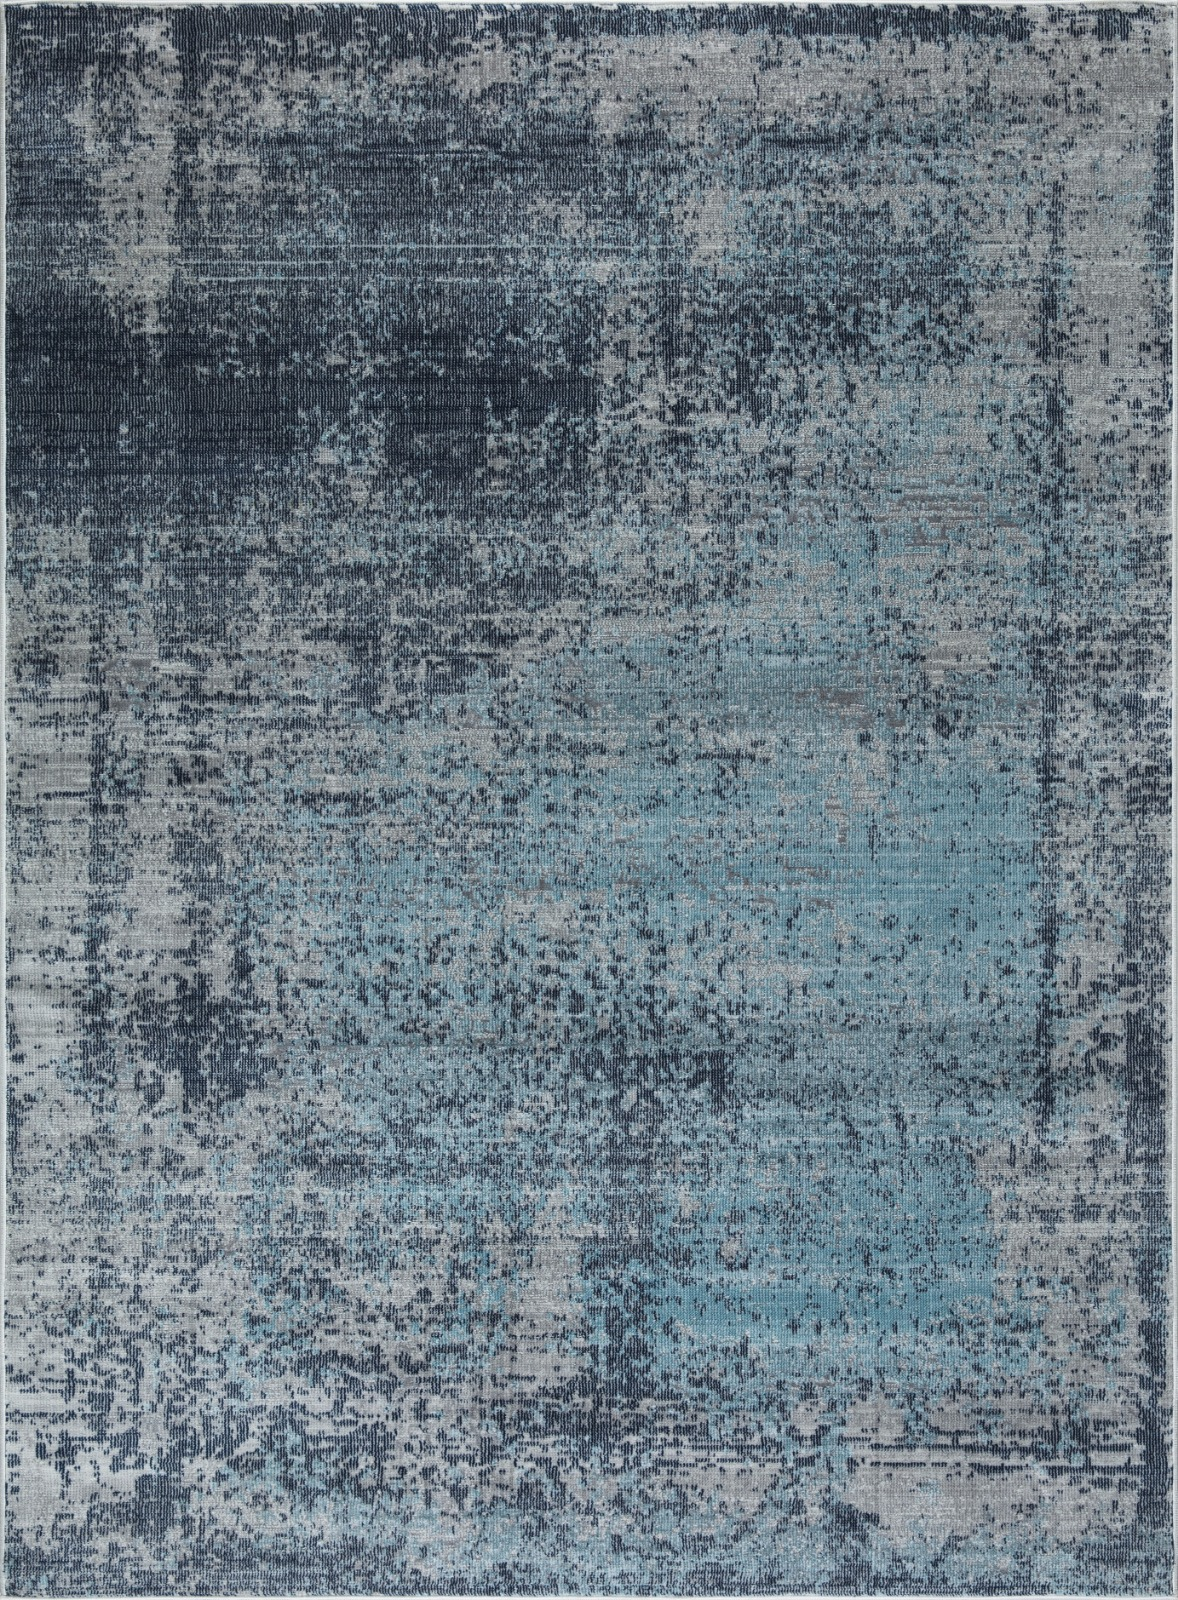 Picture of: Mod Arte Mirage Collection Area Rug Modern Contemporary Style Abstract Soft Plush Navy Blue Gray 5 2 X 7 2 Shoprhc